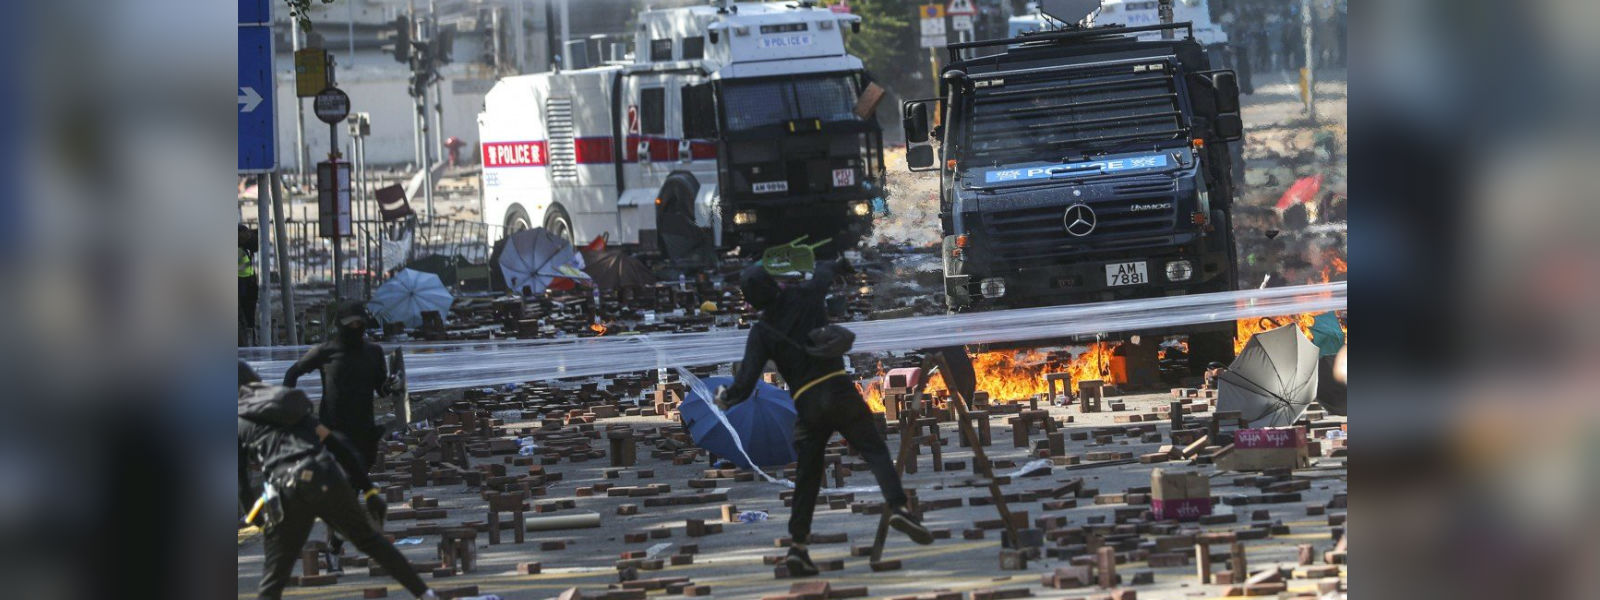 Hong Kong Polytechnic University campus reduced to 'war zone' by rioters